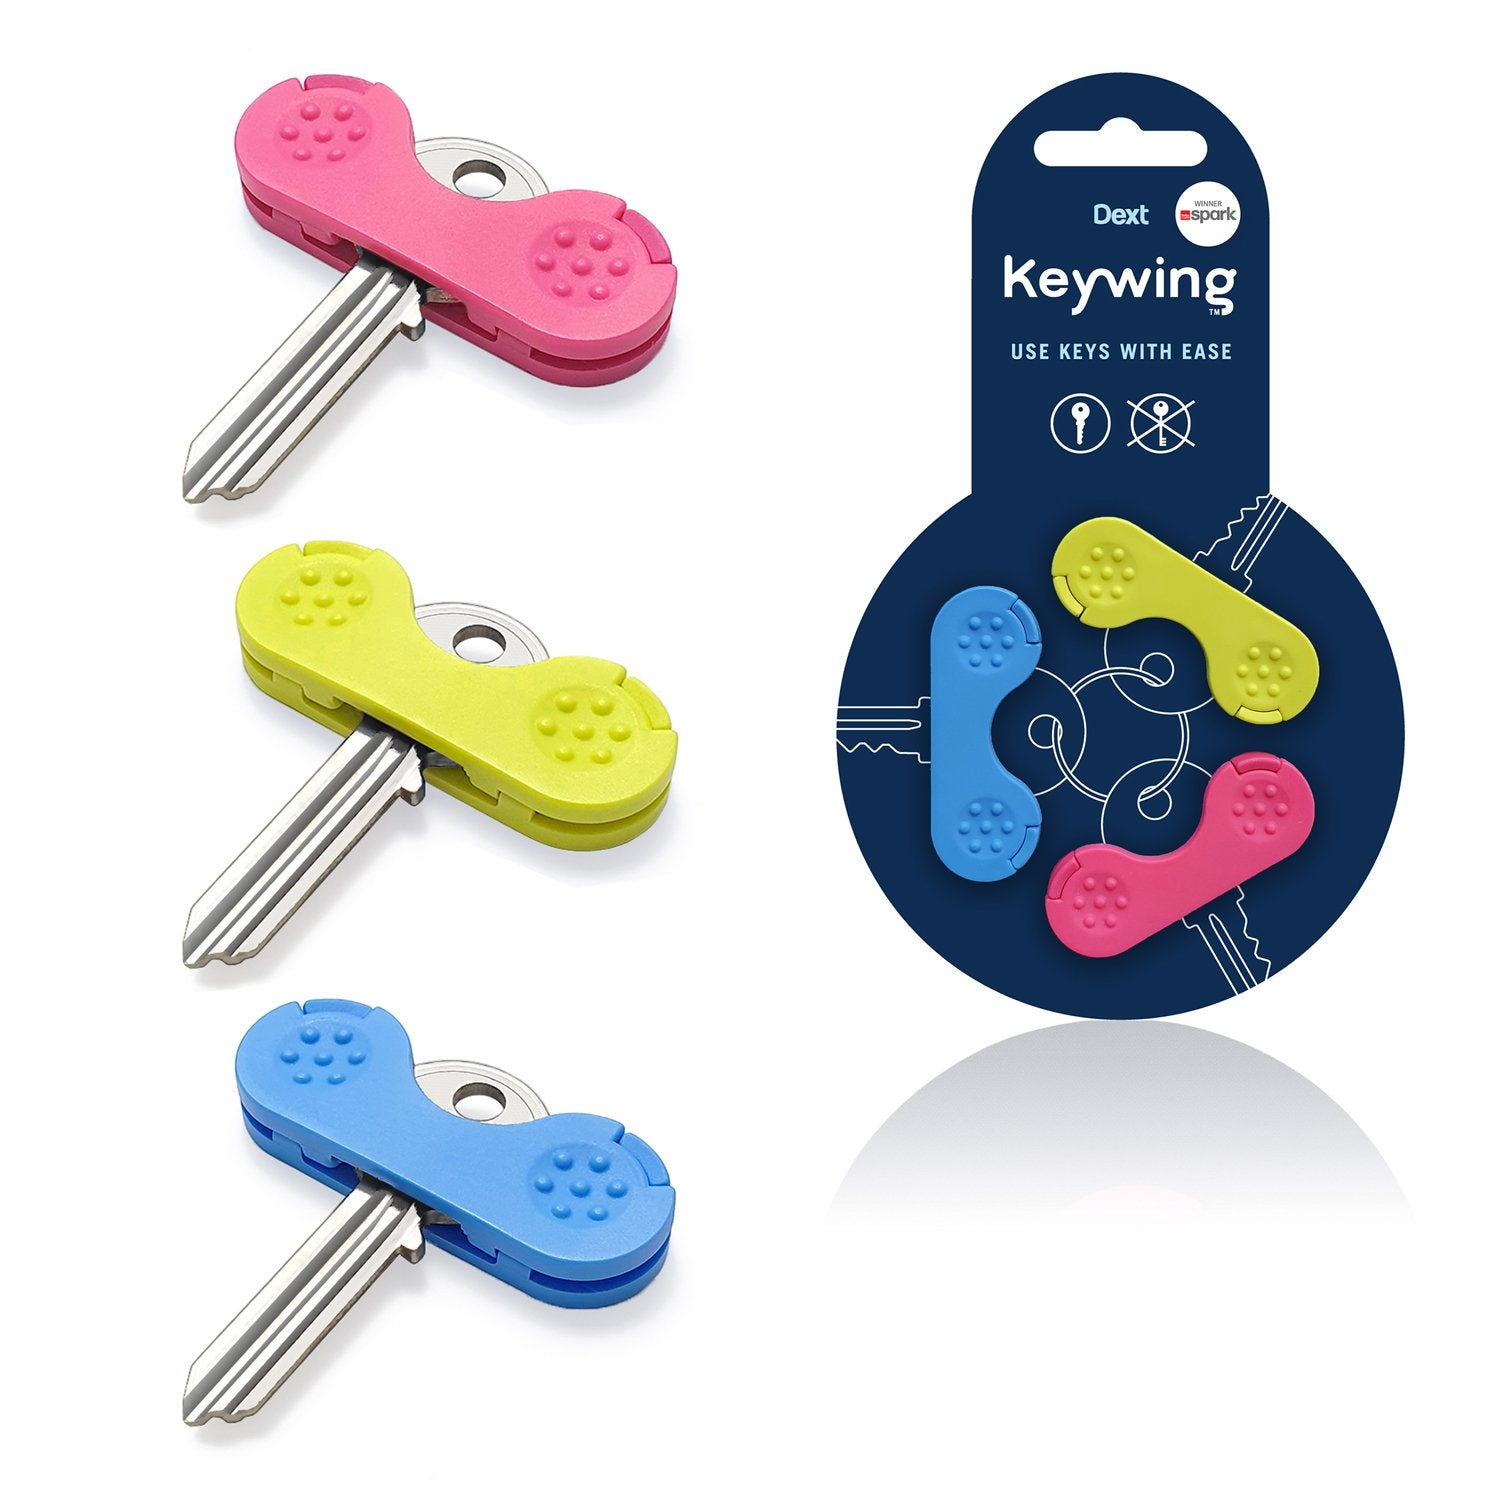 Keywing key turner triple pack front with blue, green and pink arthritis aids.